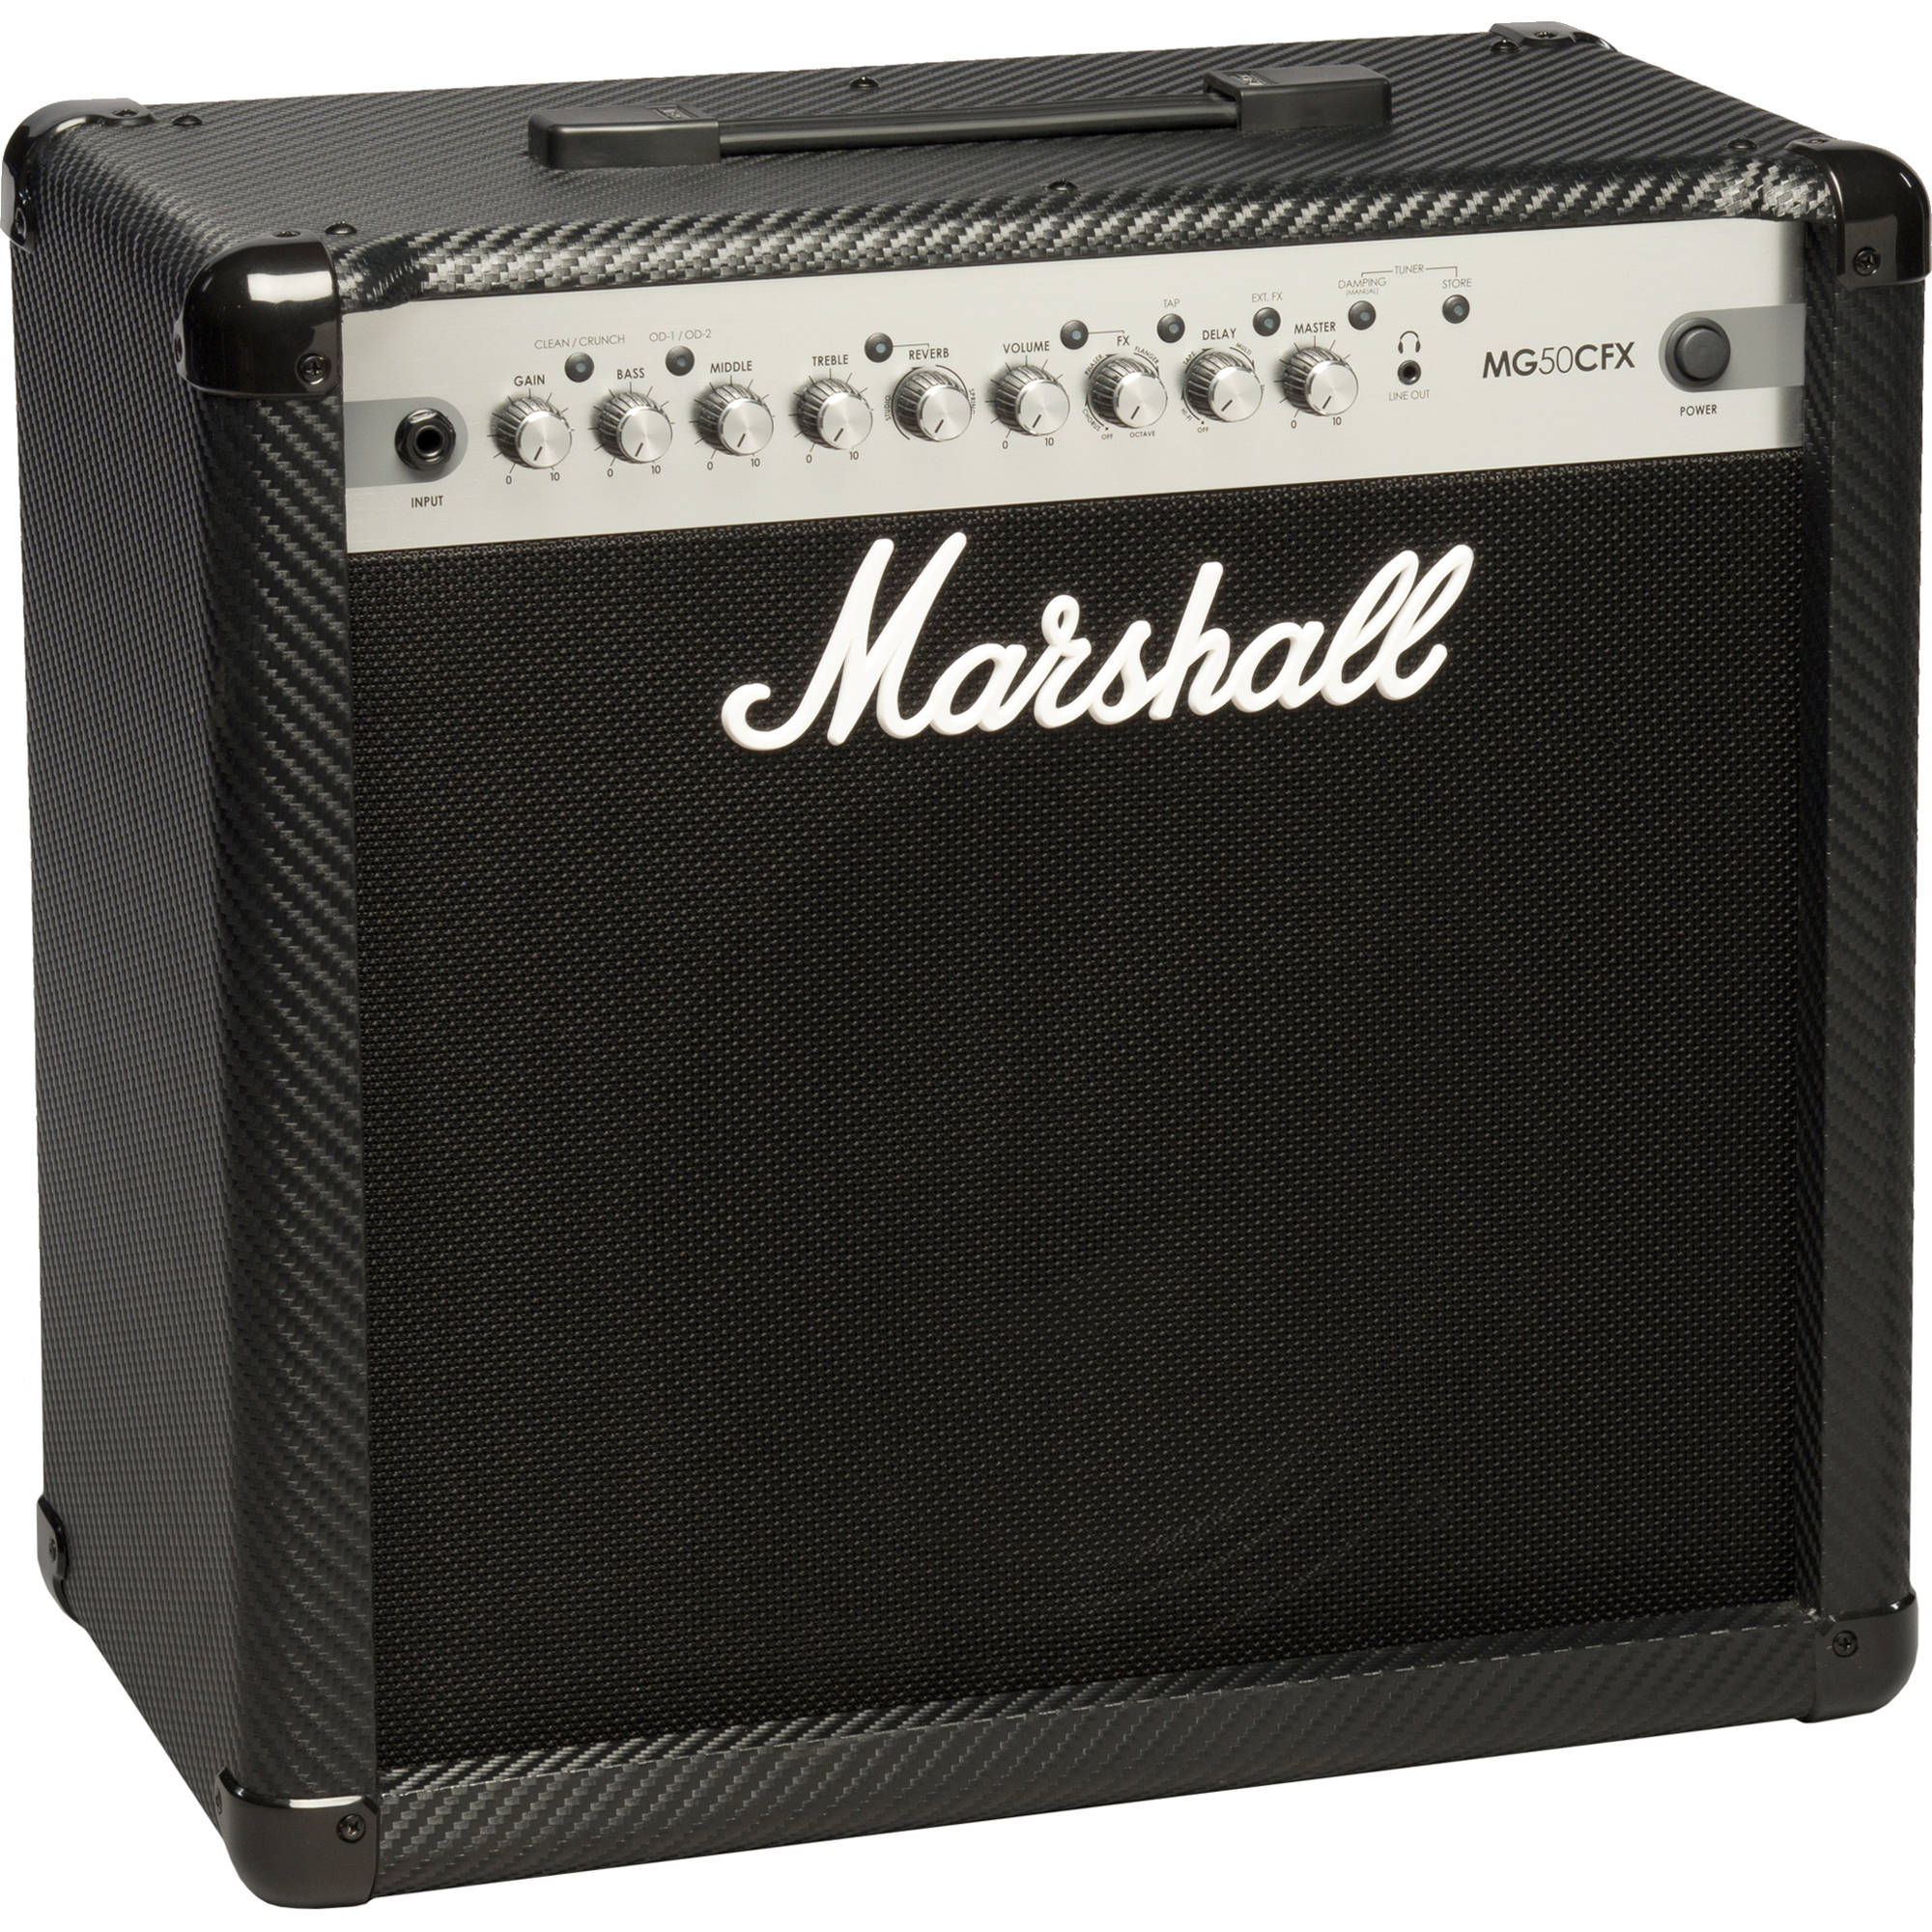 Marshall Amplification Mg50cfx 4 Channel Solid State Bh Apmilifier Mini Guitar Bass Amplifier Circuit And Explanation Combo With Presets Fx